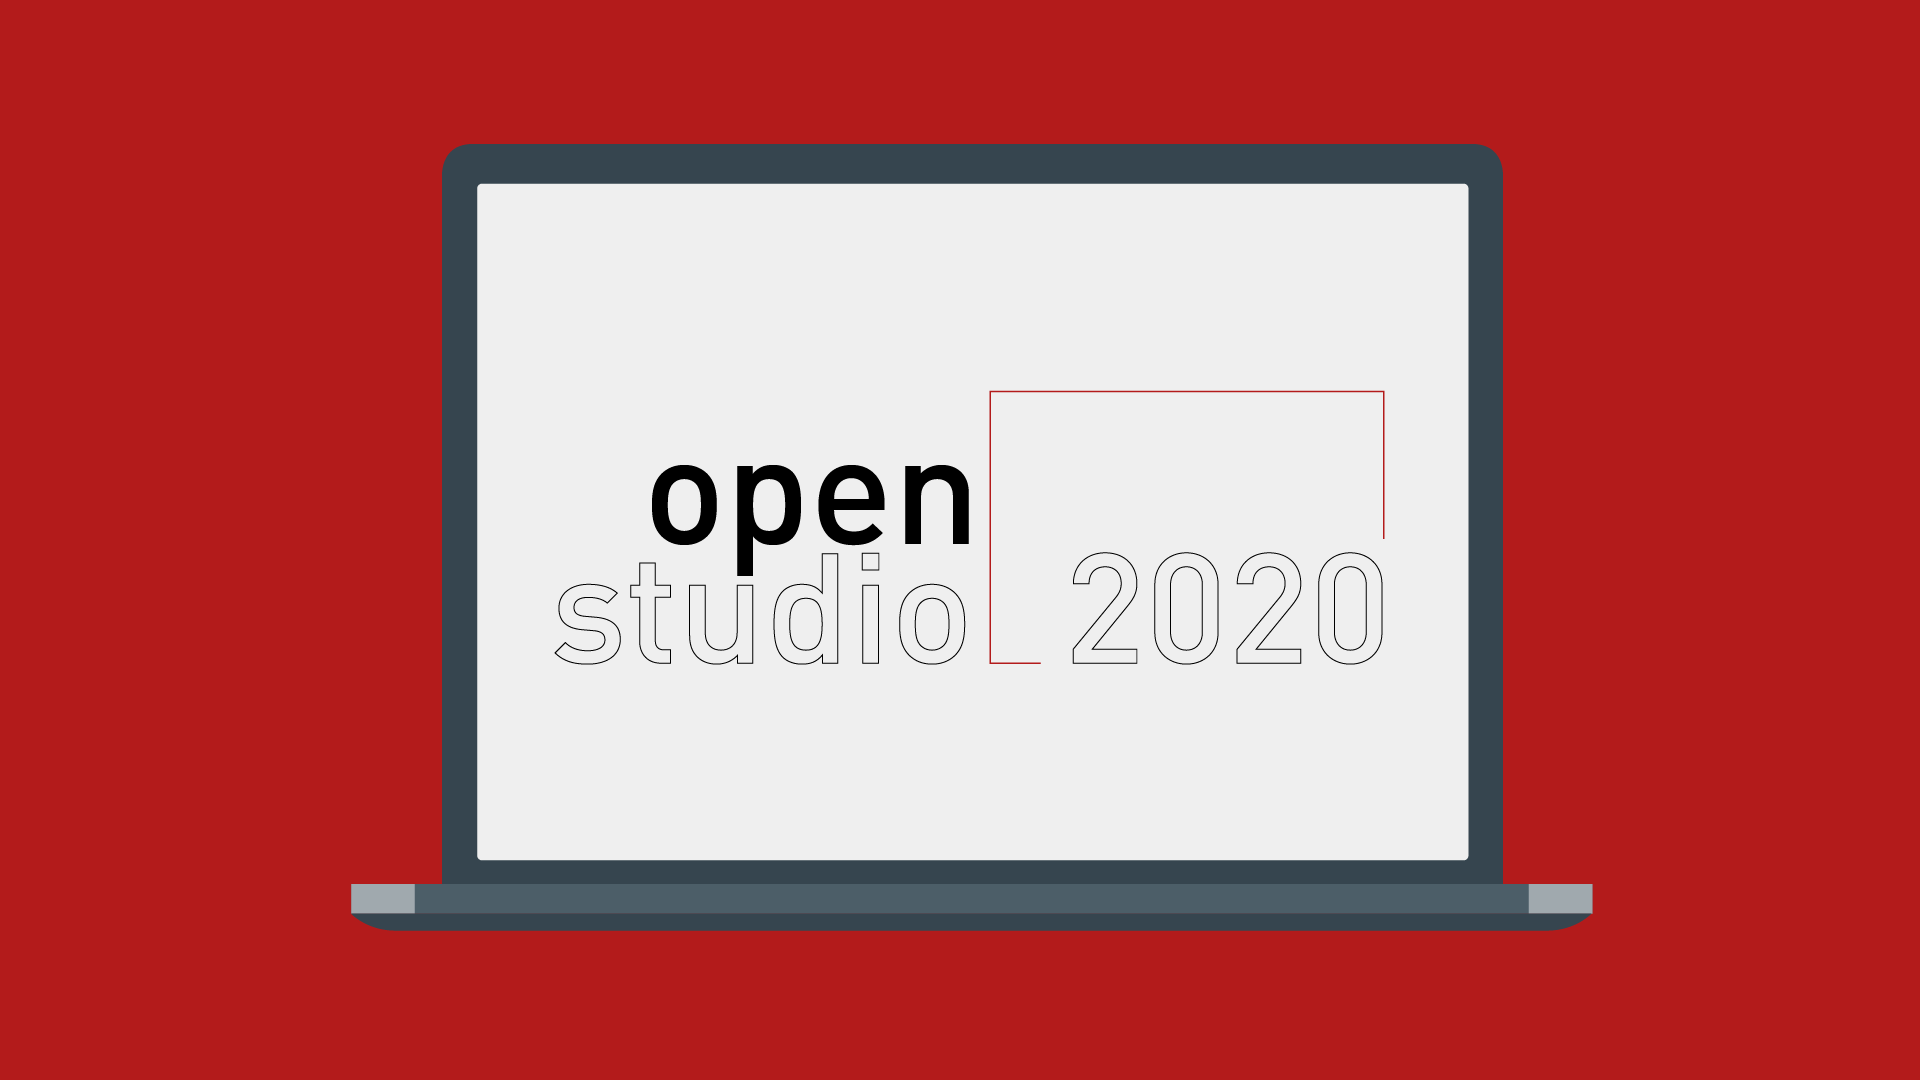 Open Studio 2020 logo within a graphic of a laptop screen